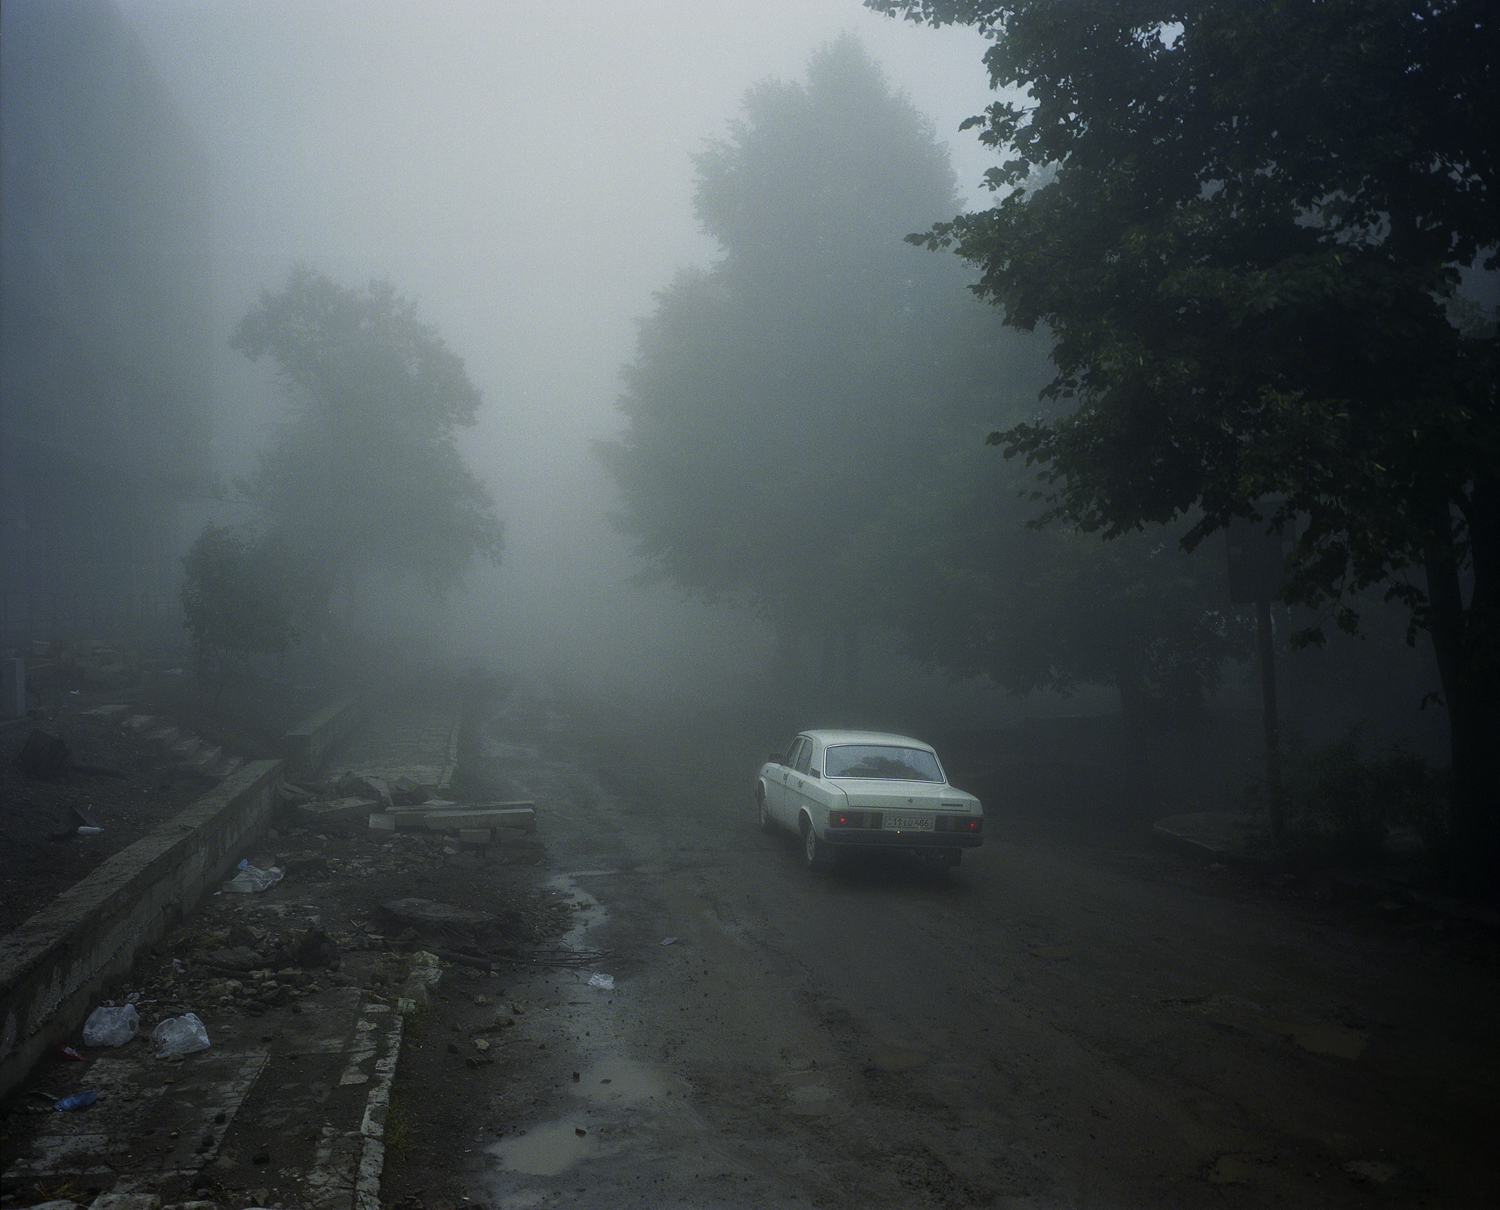 Shushi. Volga in the fog. Although the Karabakh war ended 20 years ago, many parts of town are still in ruins